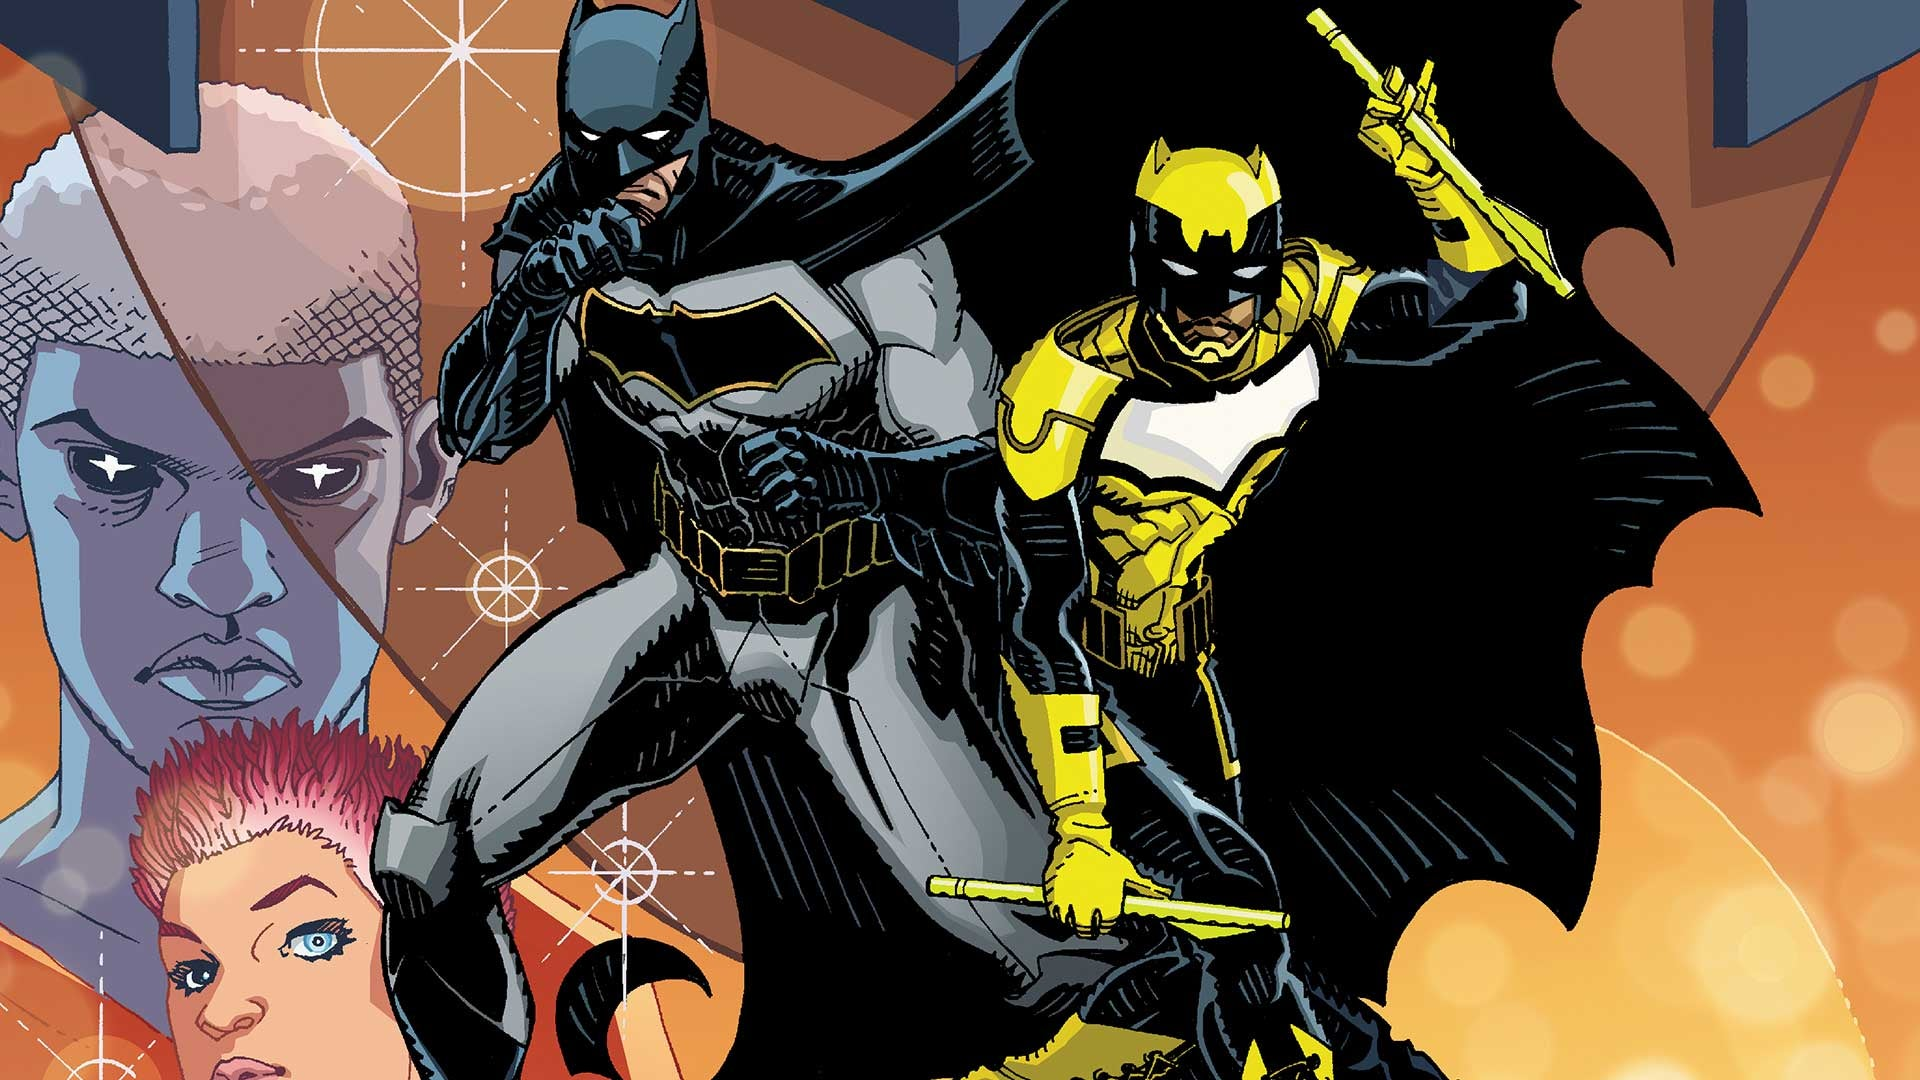 DC's Batman And The Signal Is Lighting The Way For A New Generation Of Gotham Heroes